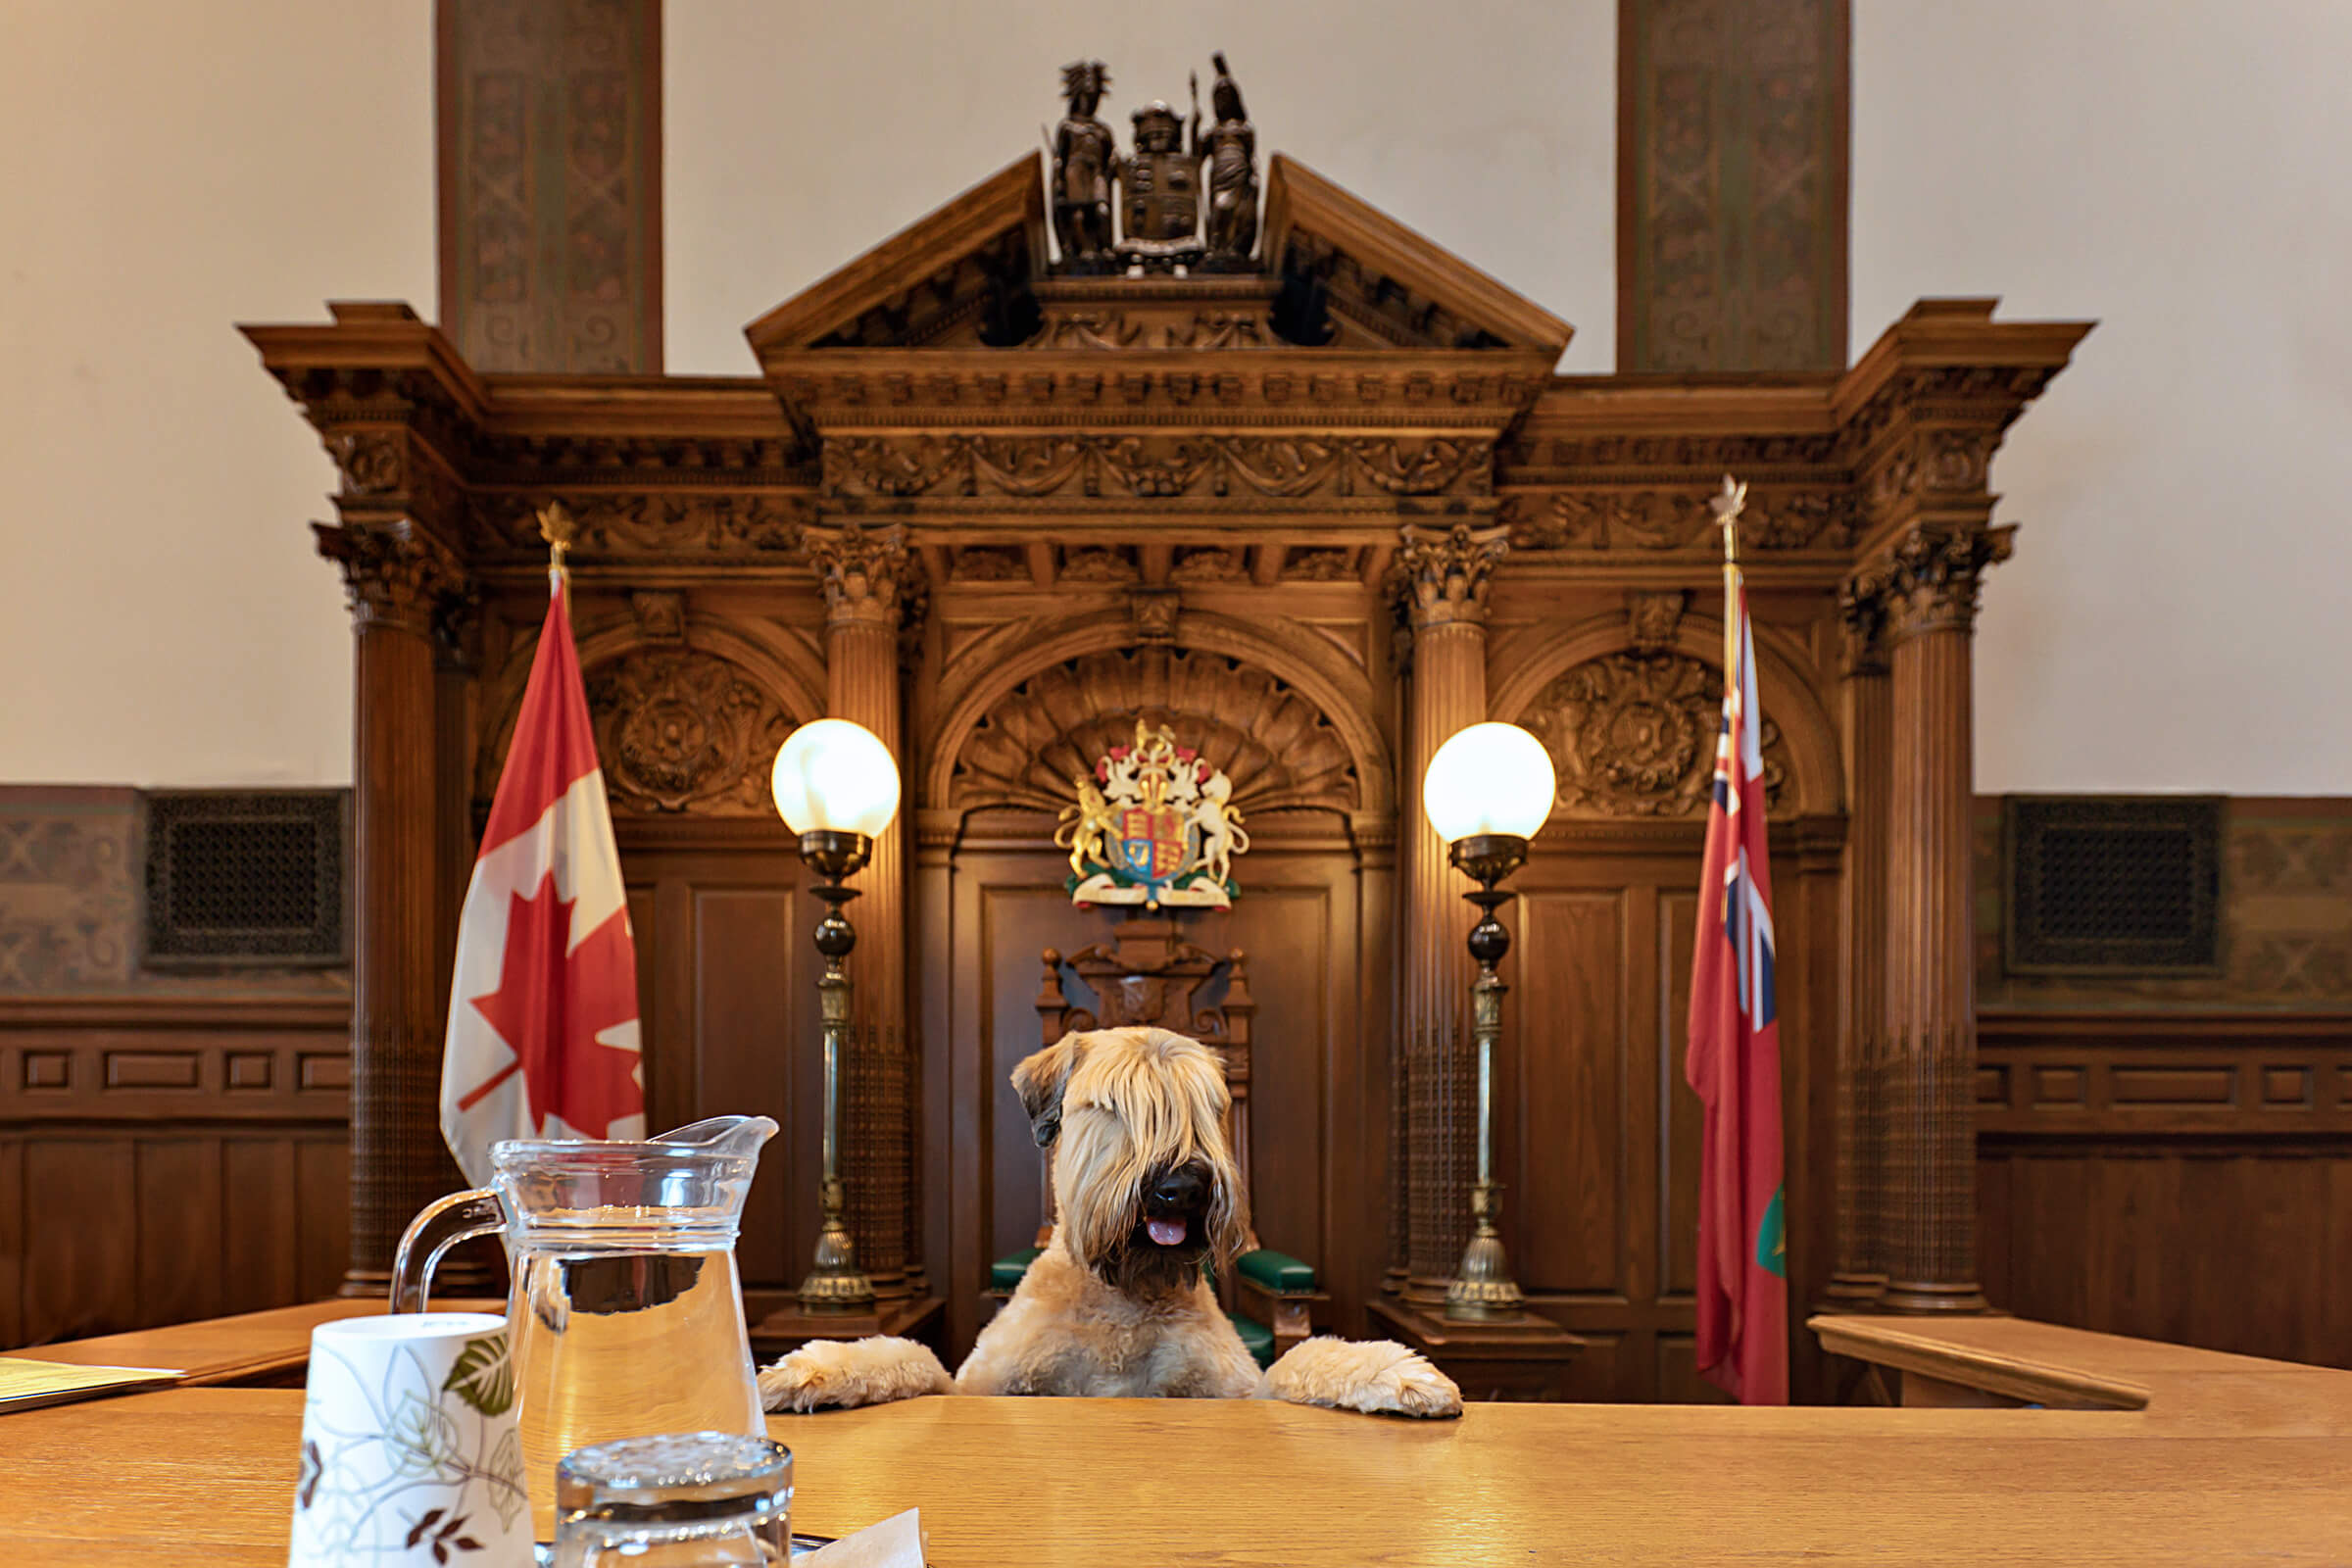 dog as judge at ceremonial courtroom 121 in Toronto